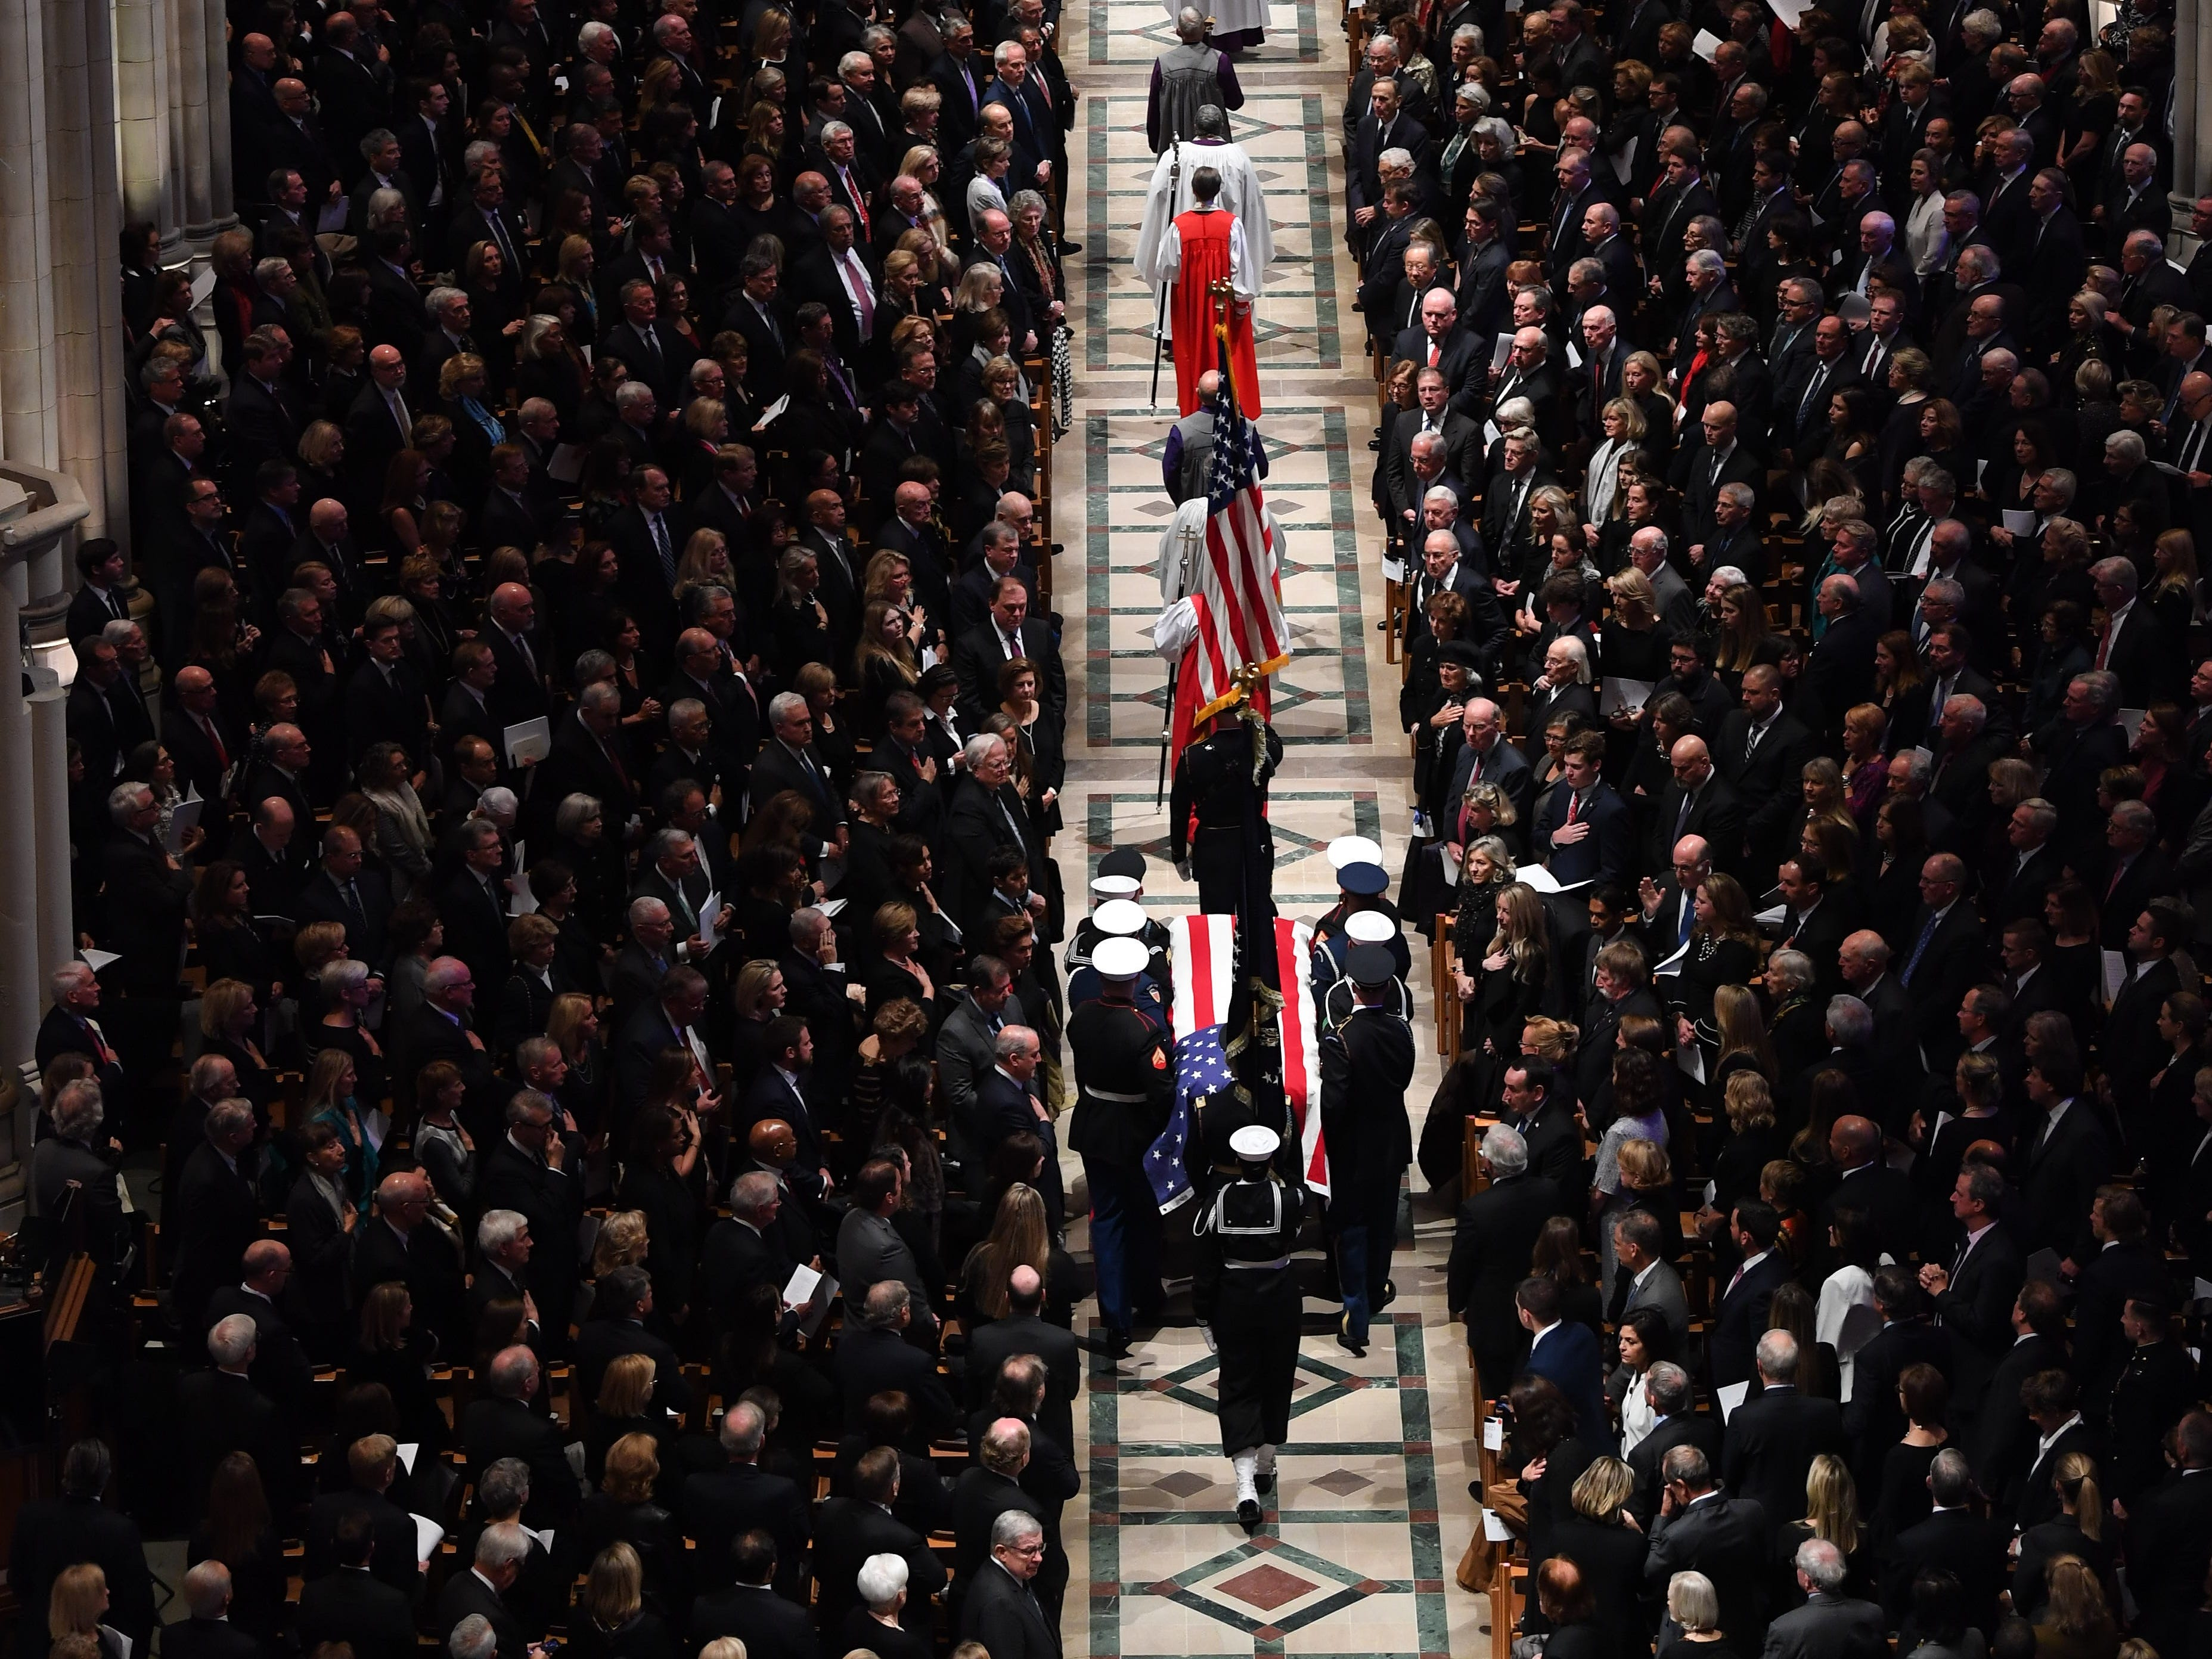 The flag-draped casket of former President George H.W. Bush is carried by a military honor guard during a State Funeral at the National Cathedral, Wednesday, Dec. 5, 2018, in Washington.